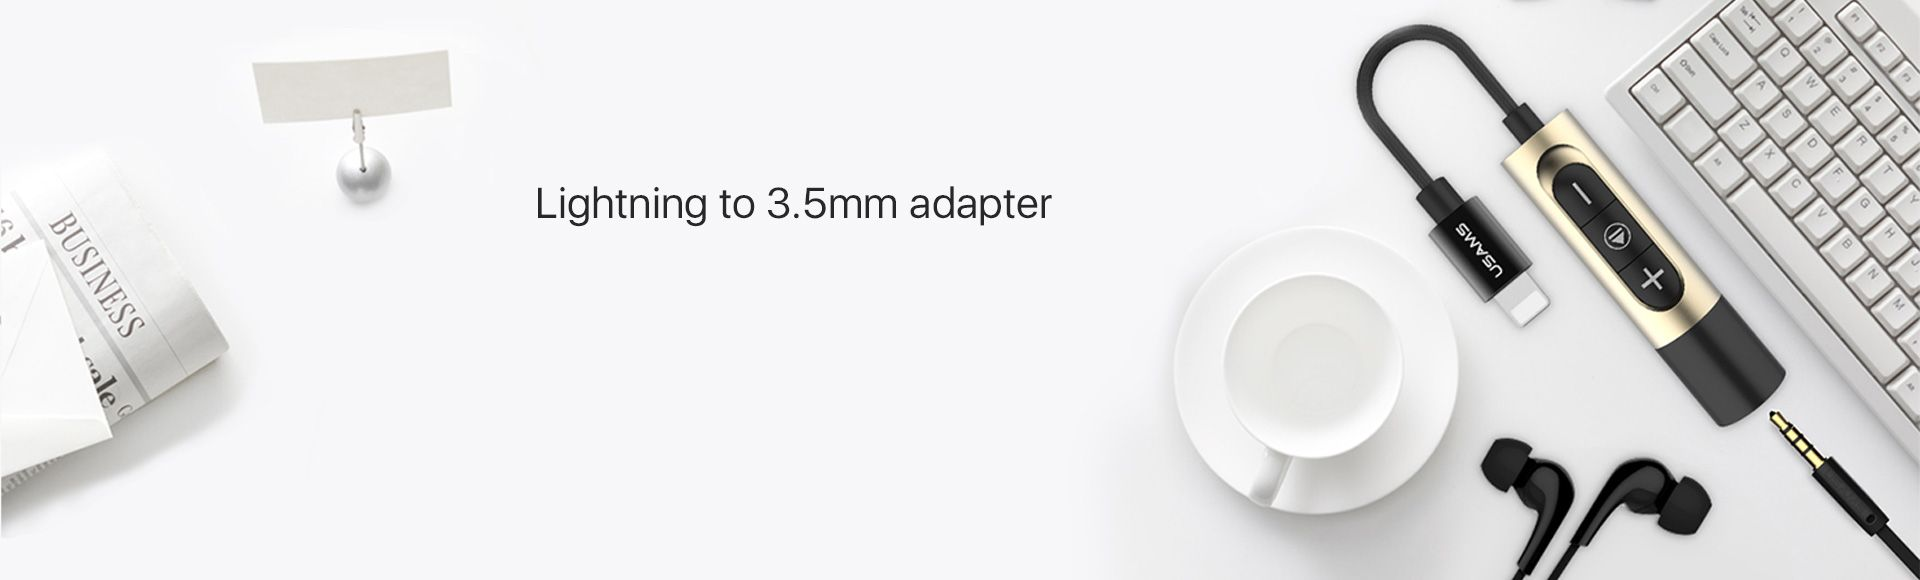 Lightning to 3.5mm Adapter Cable Support Volume Control and Charging